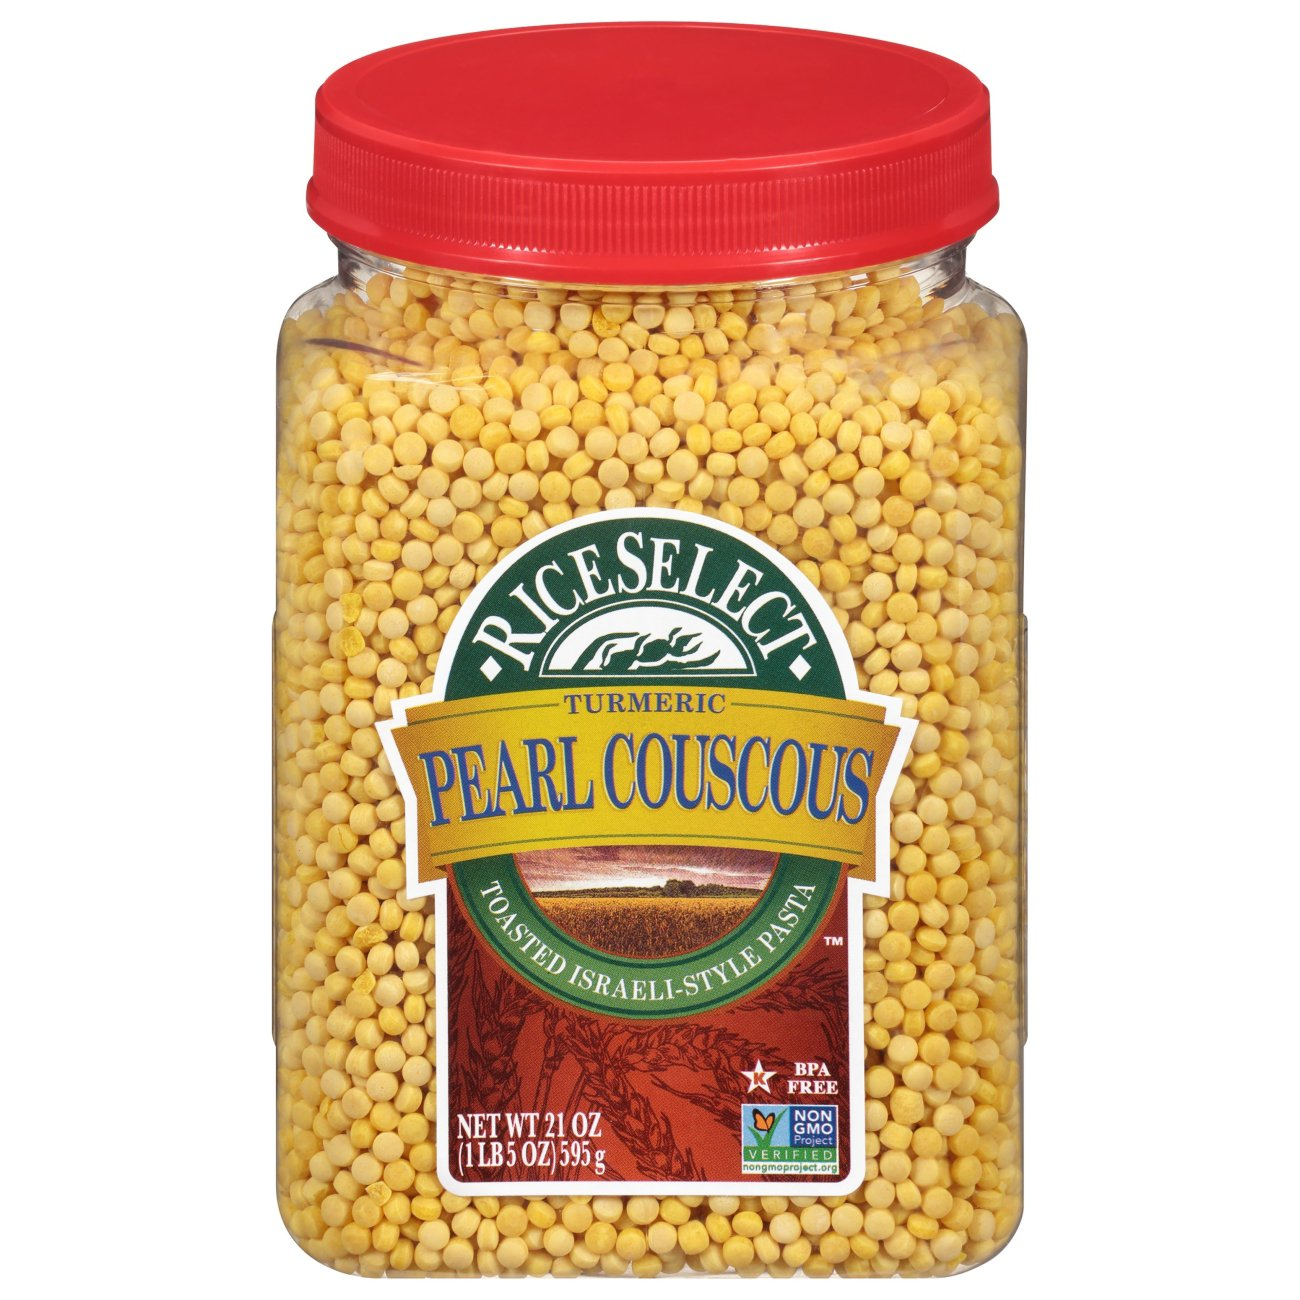 Rice Select Pearl Couscous With Turmeric Shop Pasta At H E B